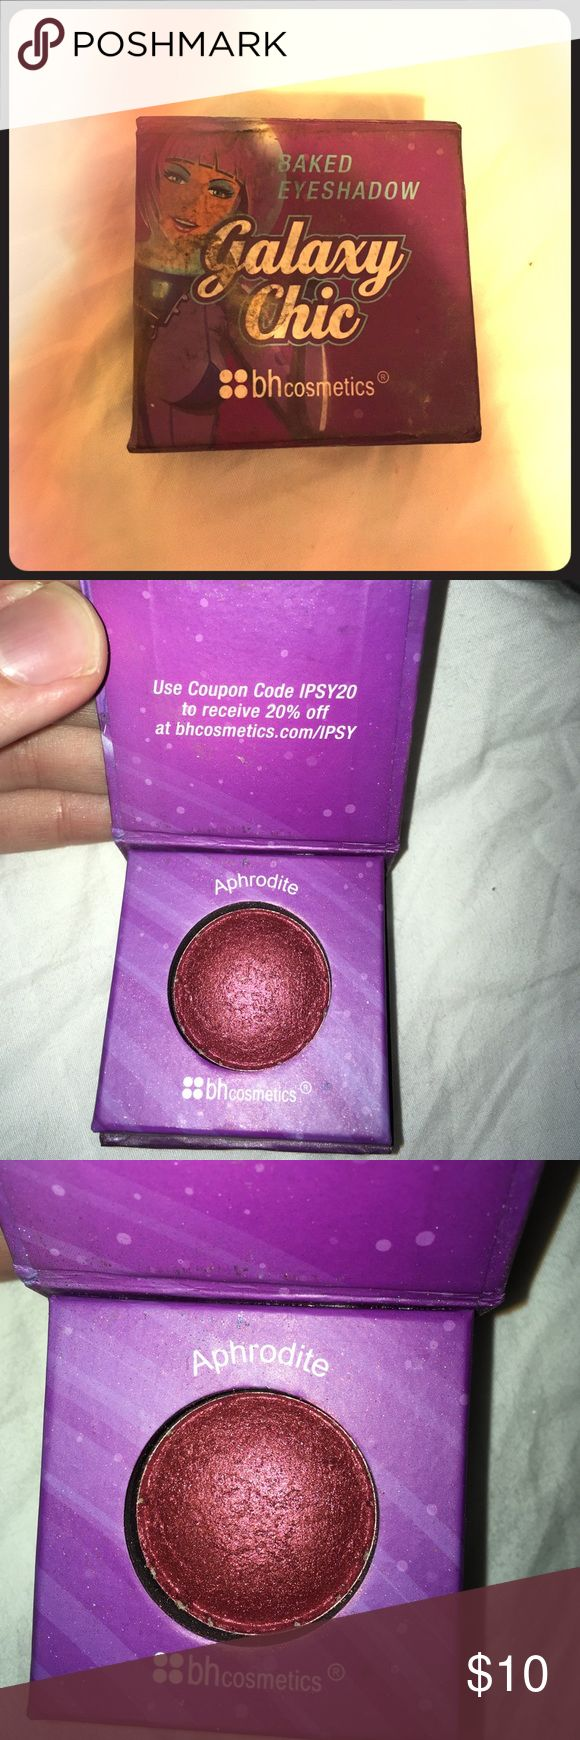 Galaxy Chic baked eyeshadow Never been worn! Free with any purchase bhcosmetics  Makeup Eyeshadow